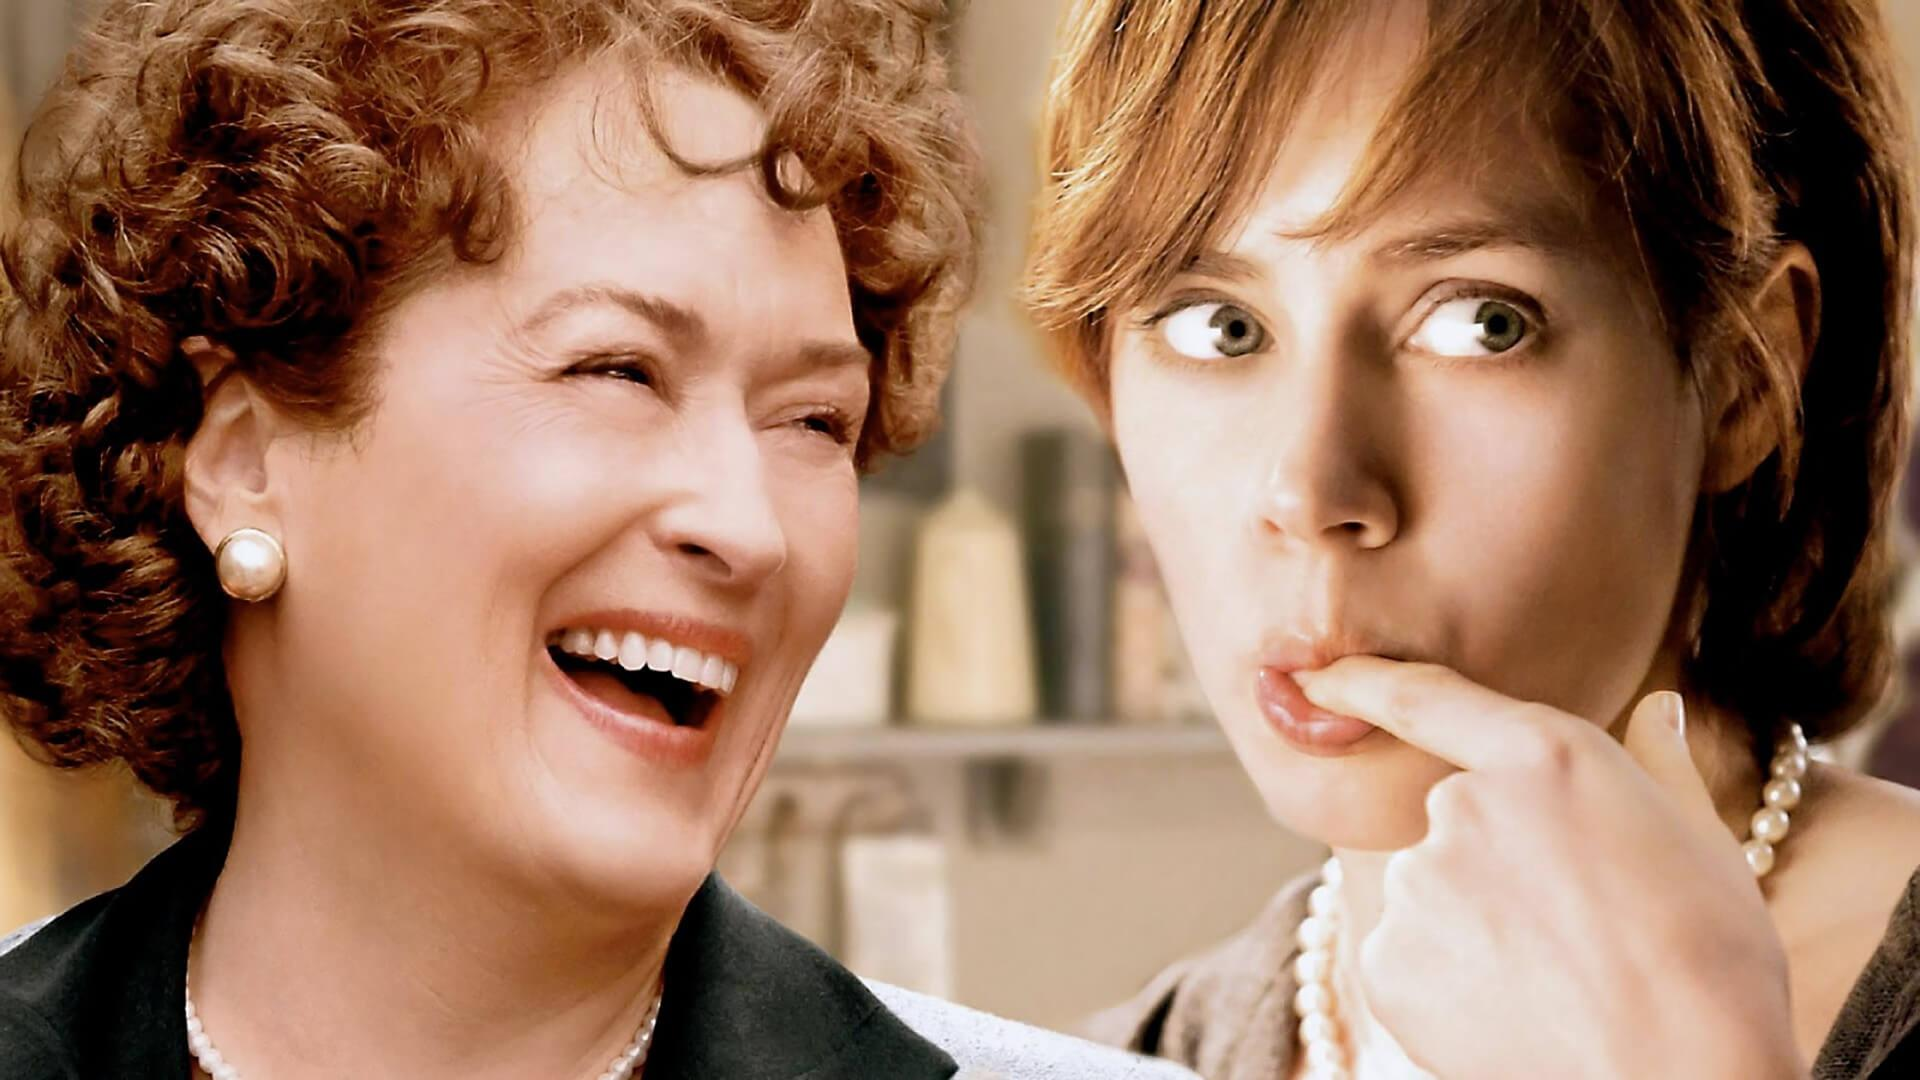 Julie and Julia WEB EXTRA